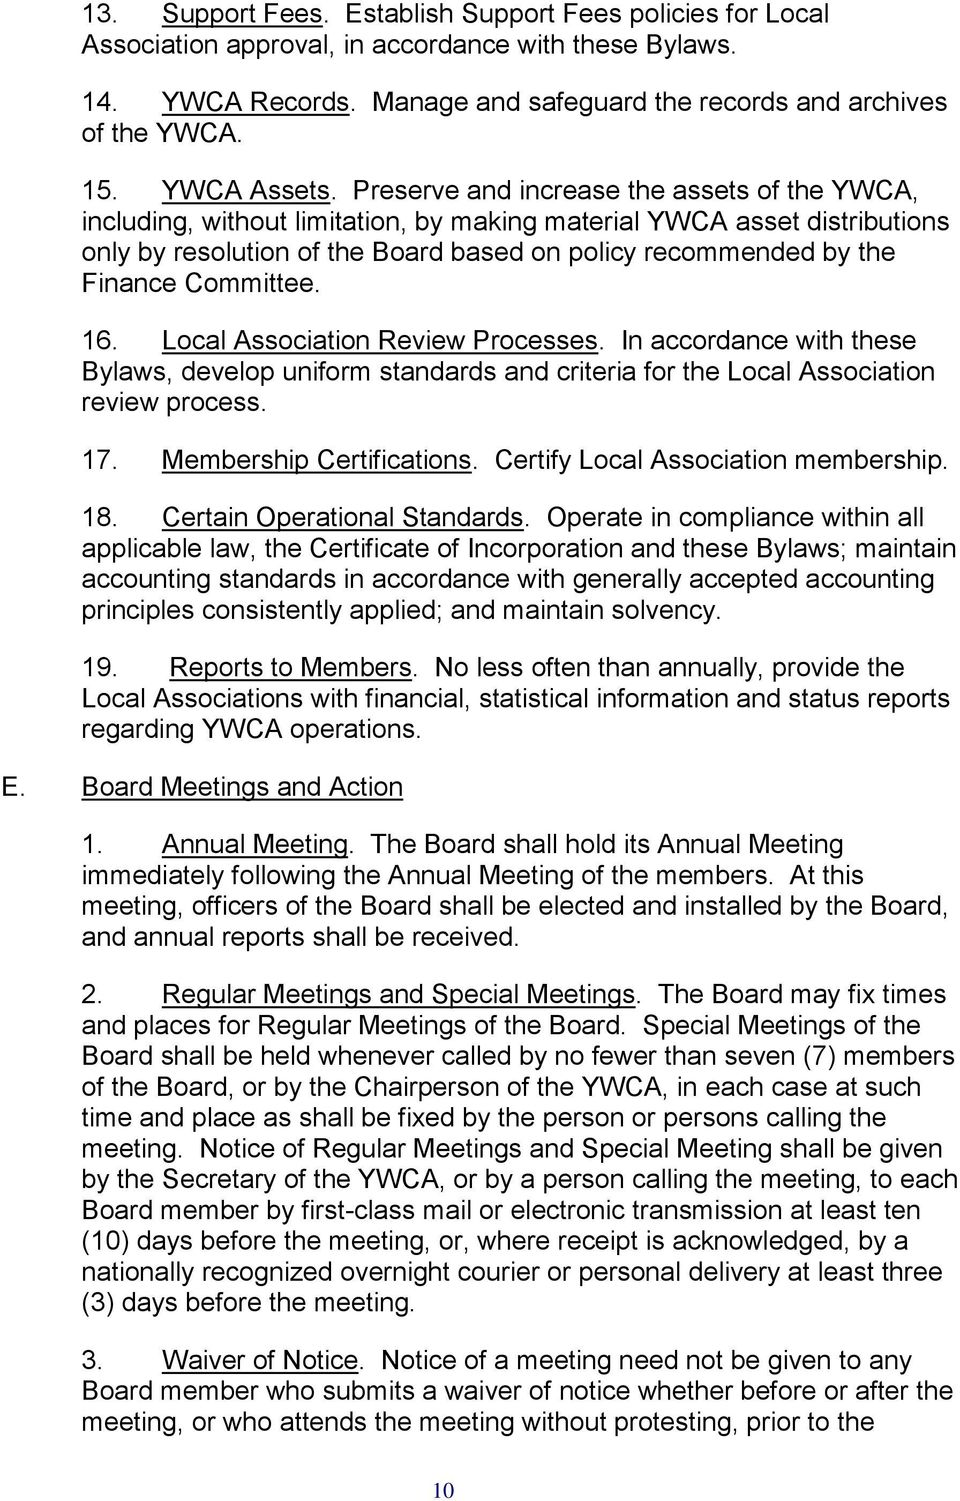 Preserve and increase the assets of the YWCA, including, without limitation, by making material YWCA asset distributions only by resolution of the Board based on policy recommended by the Finance